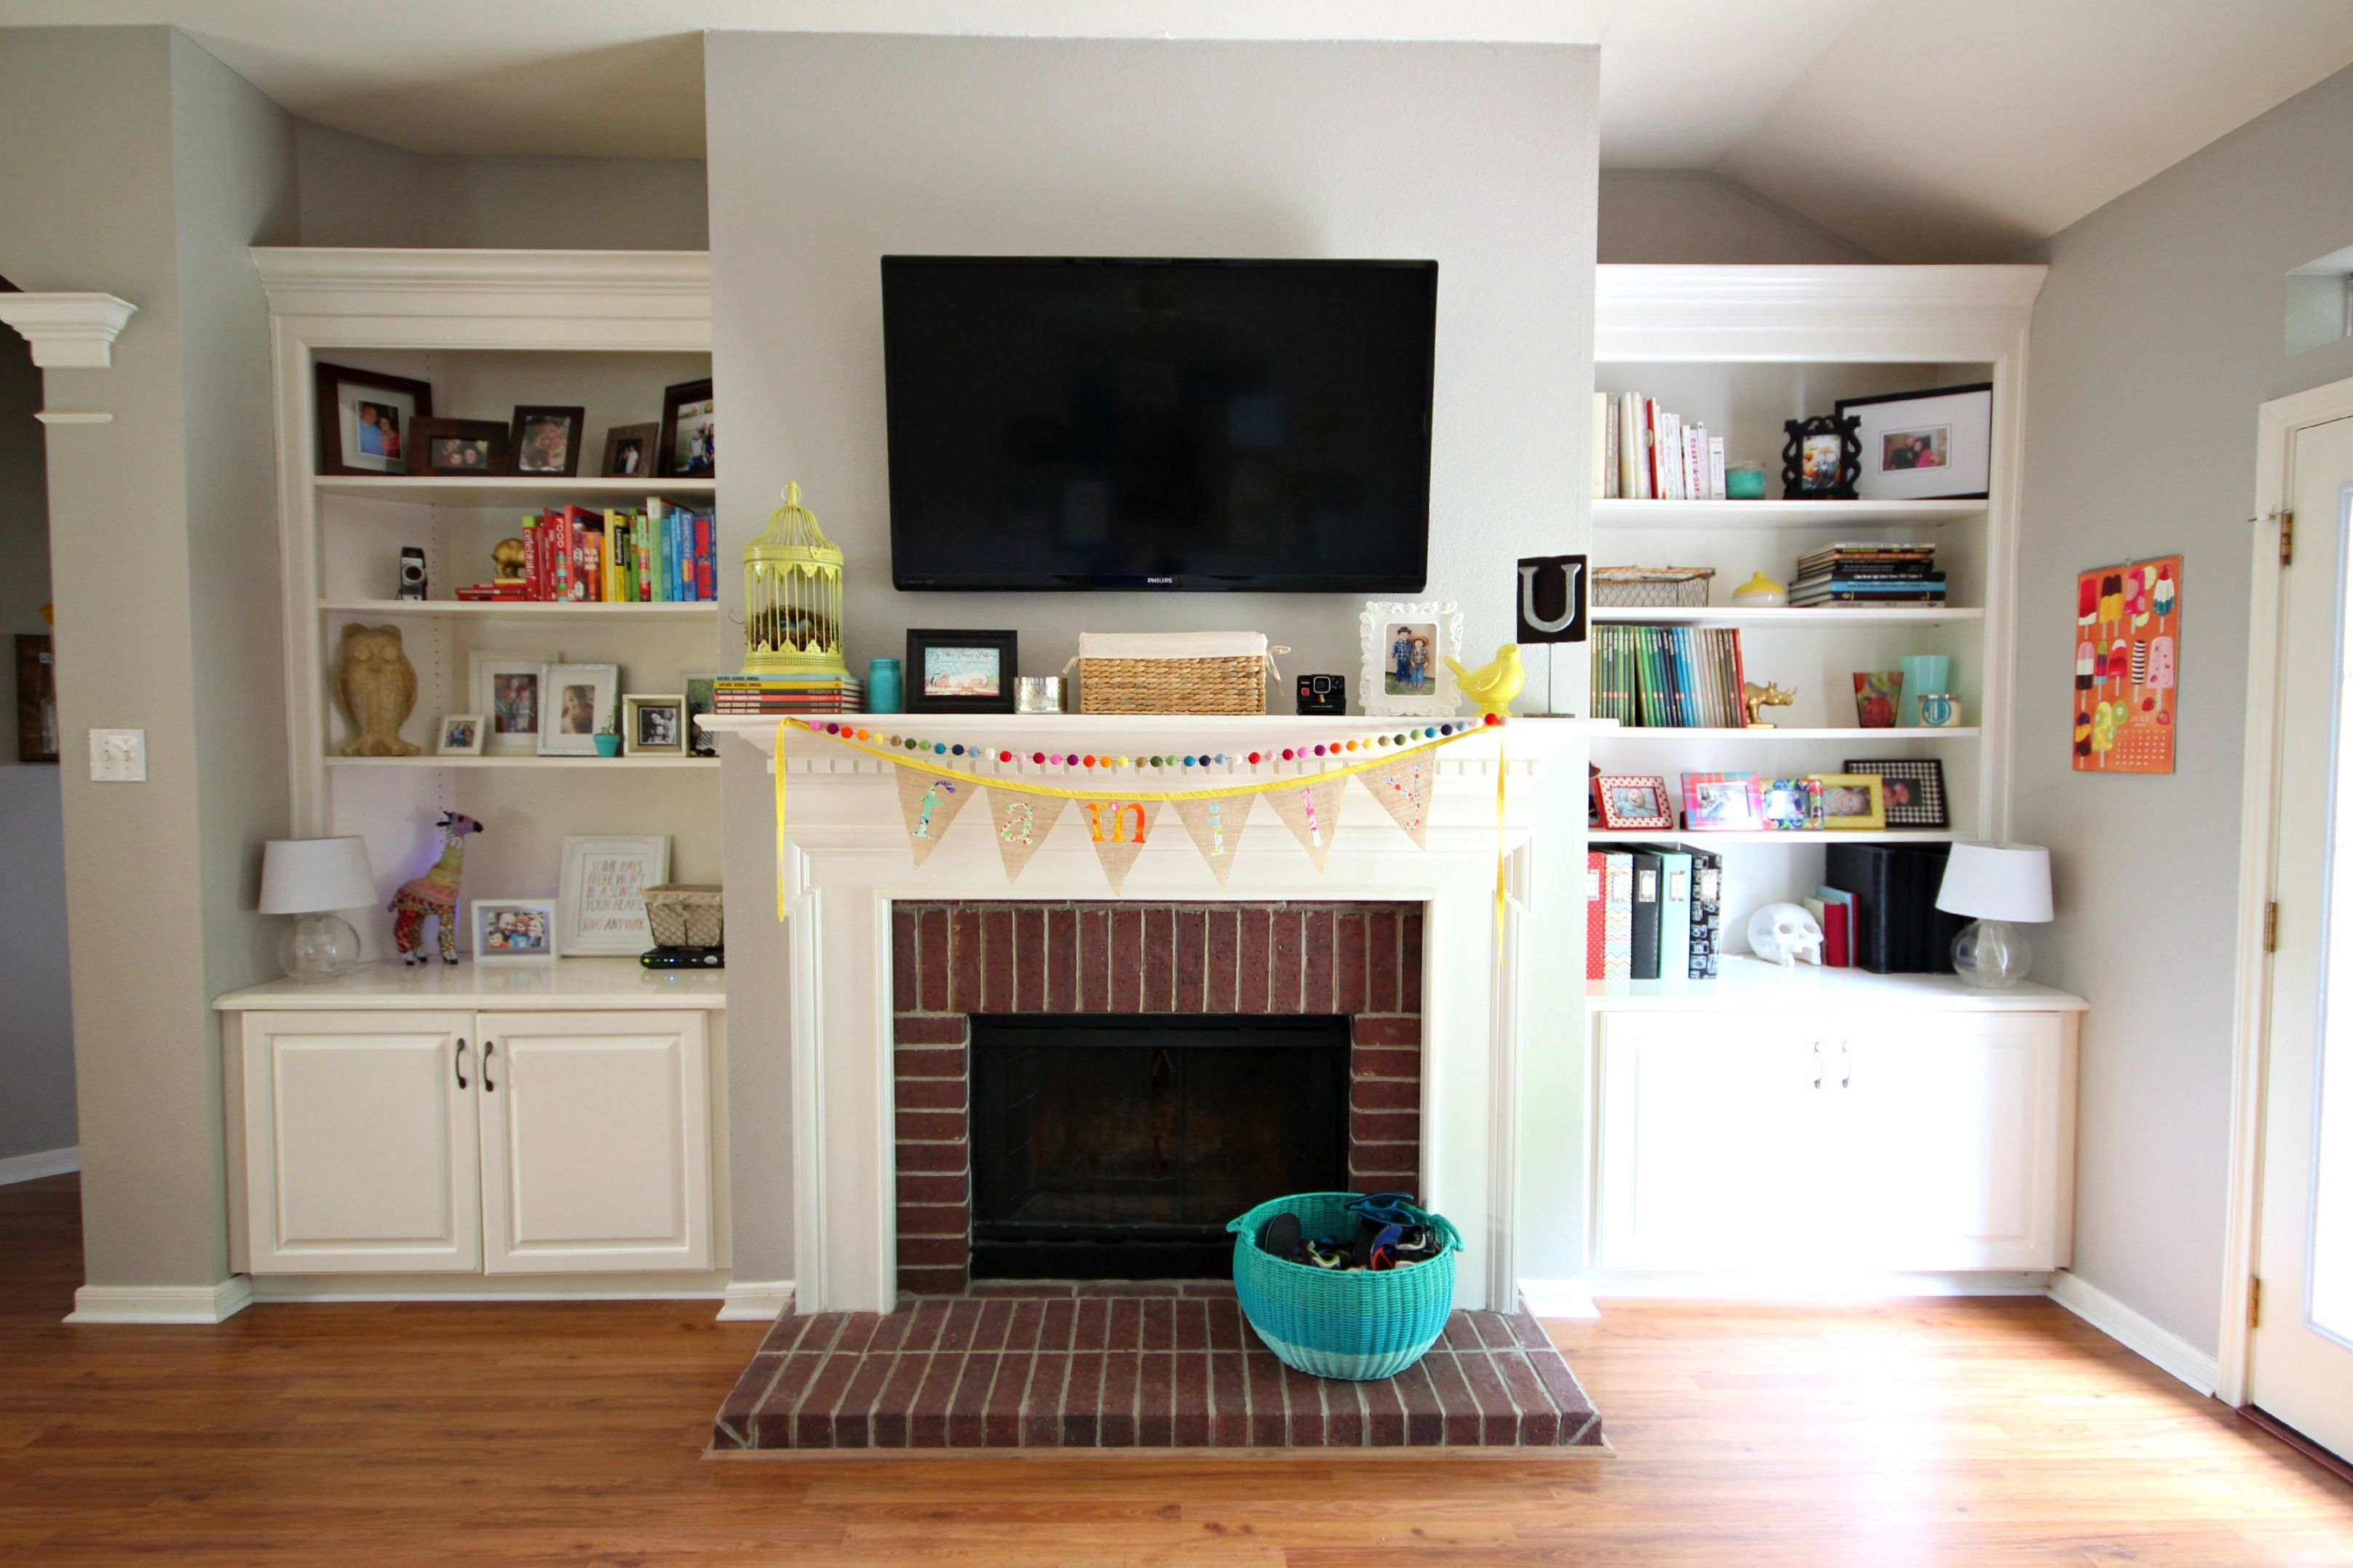 living room wall cabinets built%0A built in cabinets around brick fireplace  Google Search